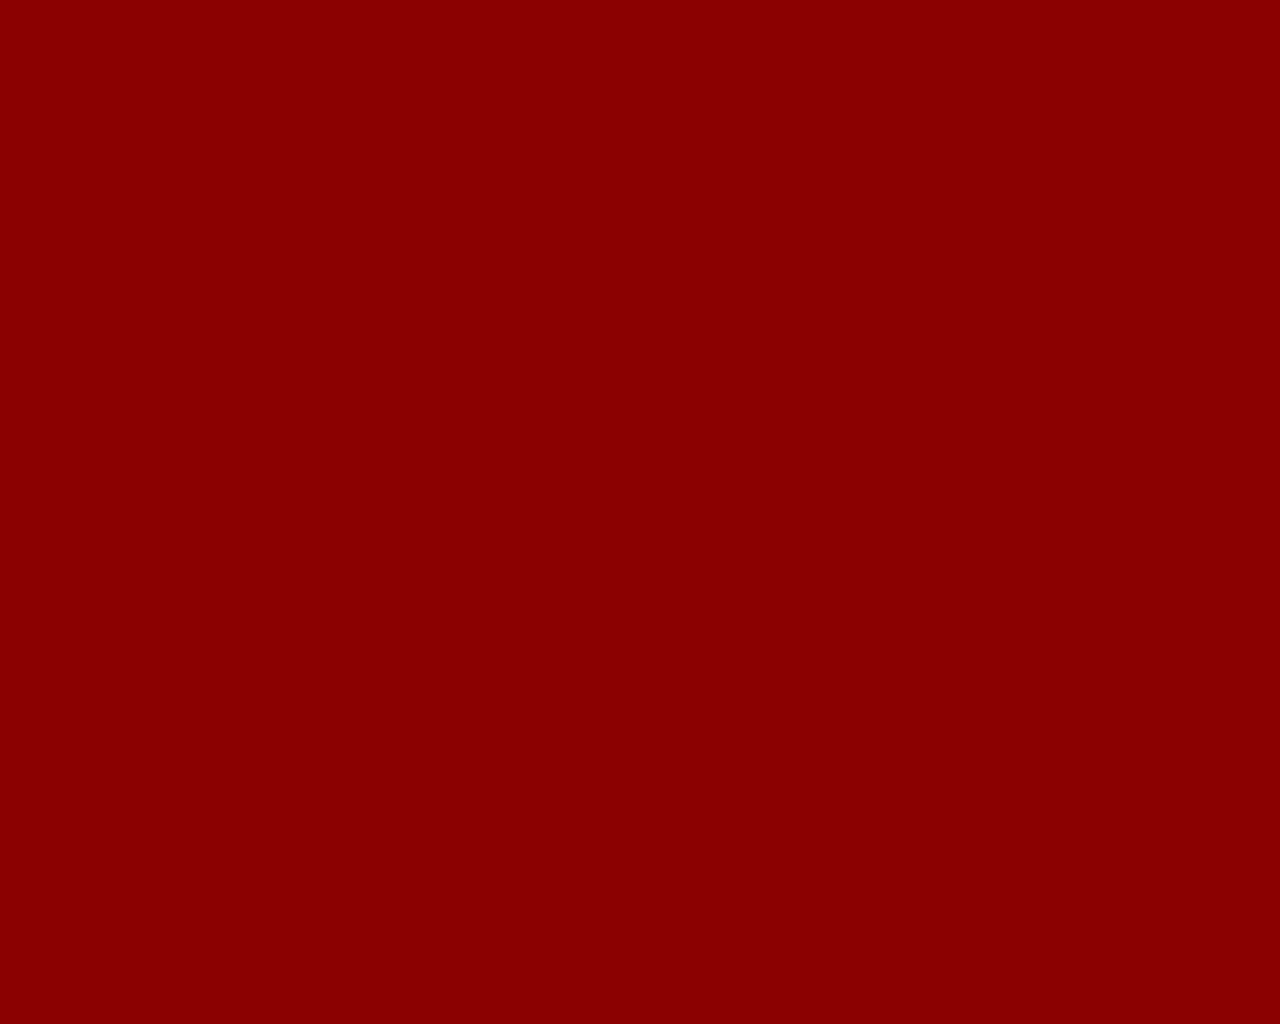 1280x1024 Dark Red Solid Color Background